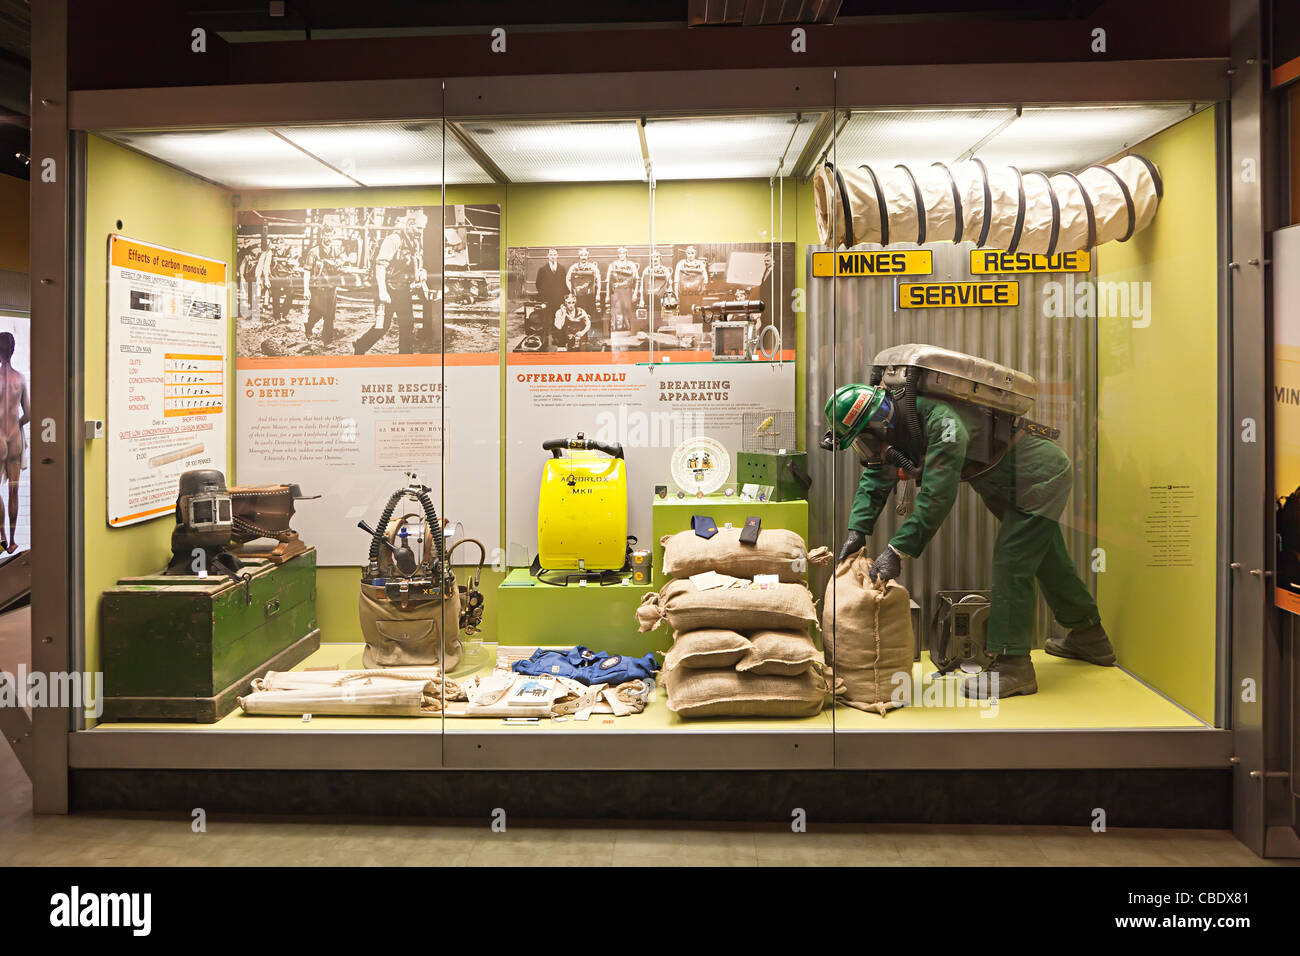 Mines Rescue Service display in glass case at Big Pit Mining Museum Blaenavon Wales UK - Stock Image